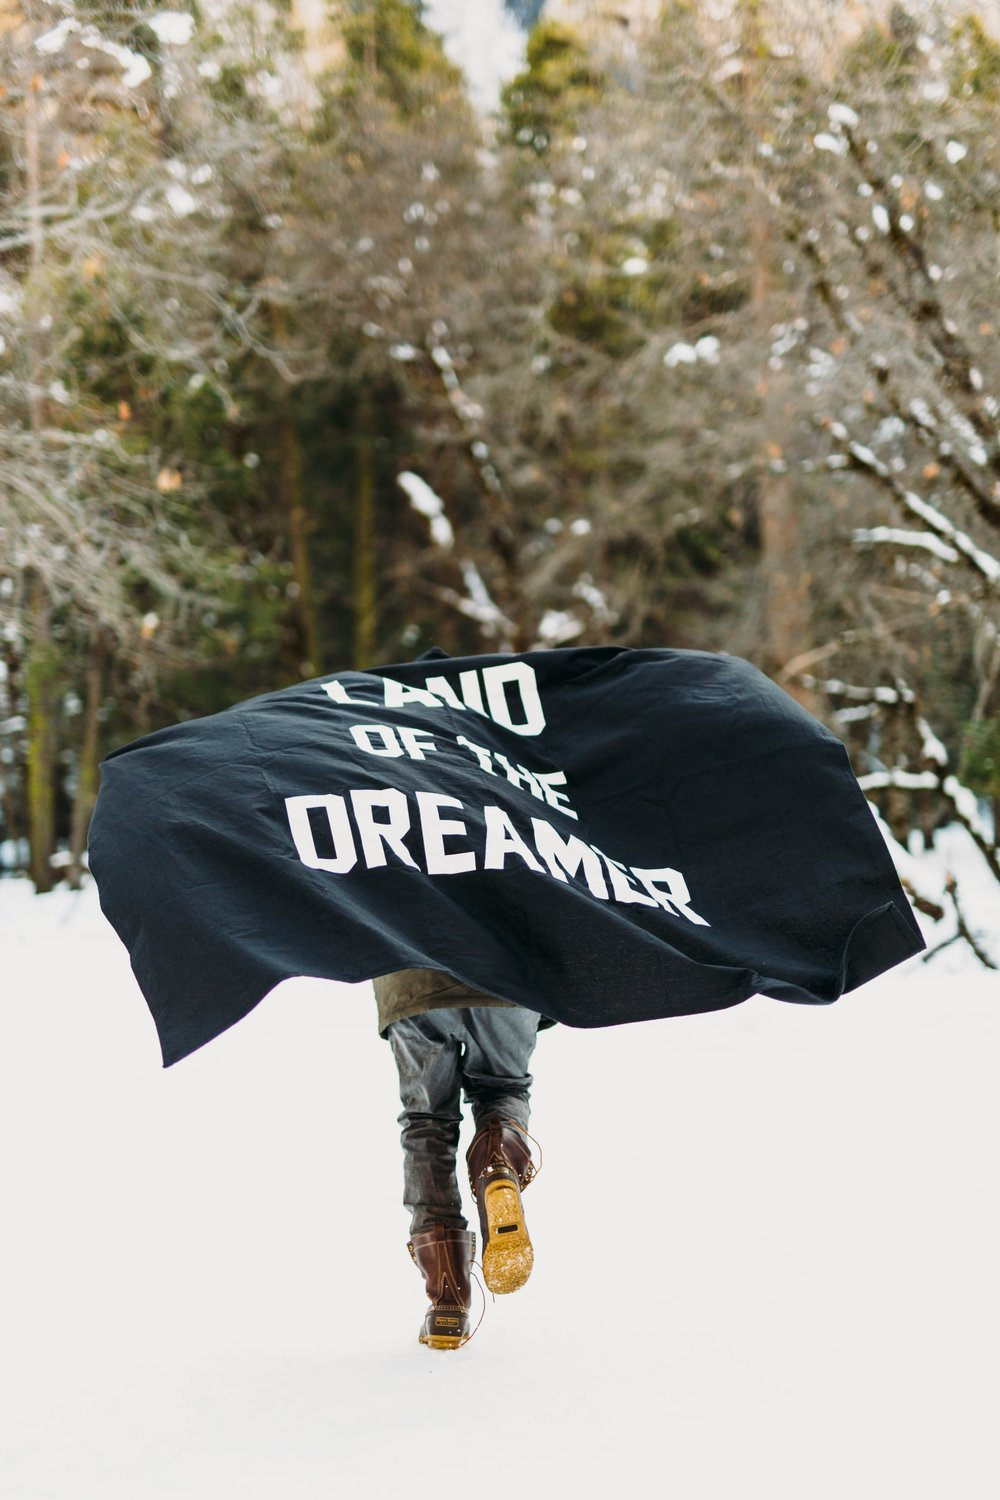 When a dreamer claims territory in her land, she has to maintain her ground. That's what it is to live in the land of dreamers. Holding ground.